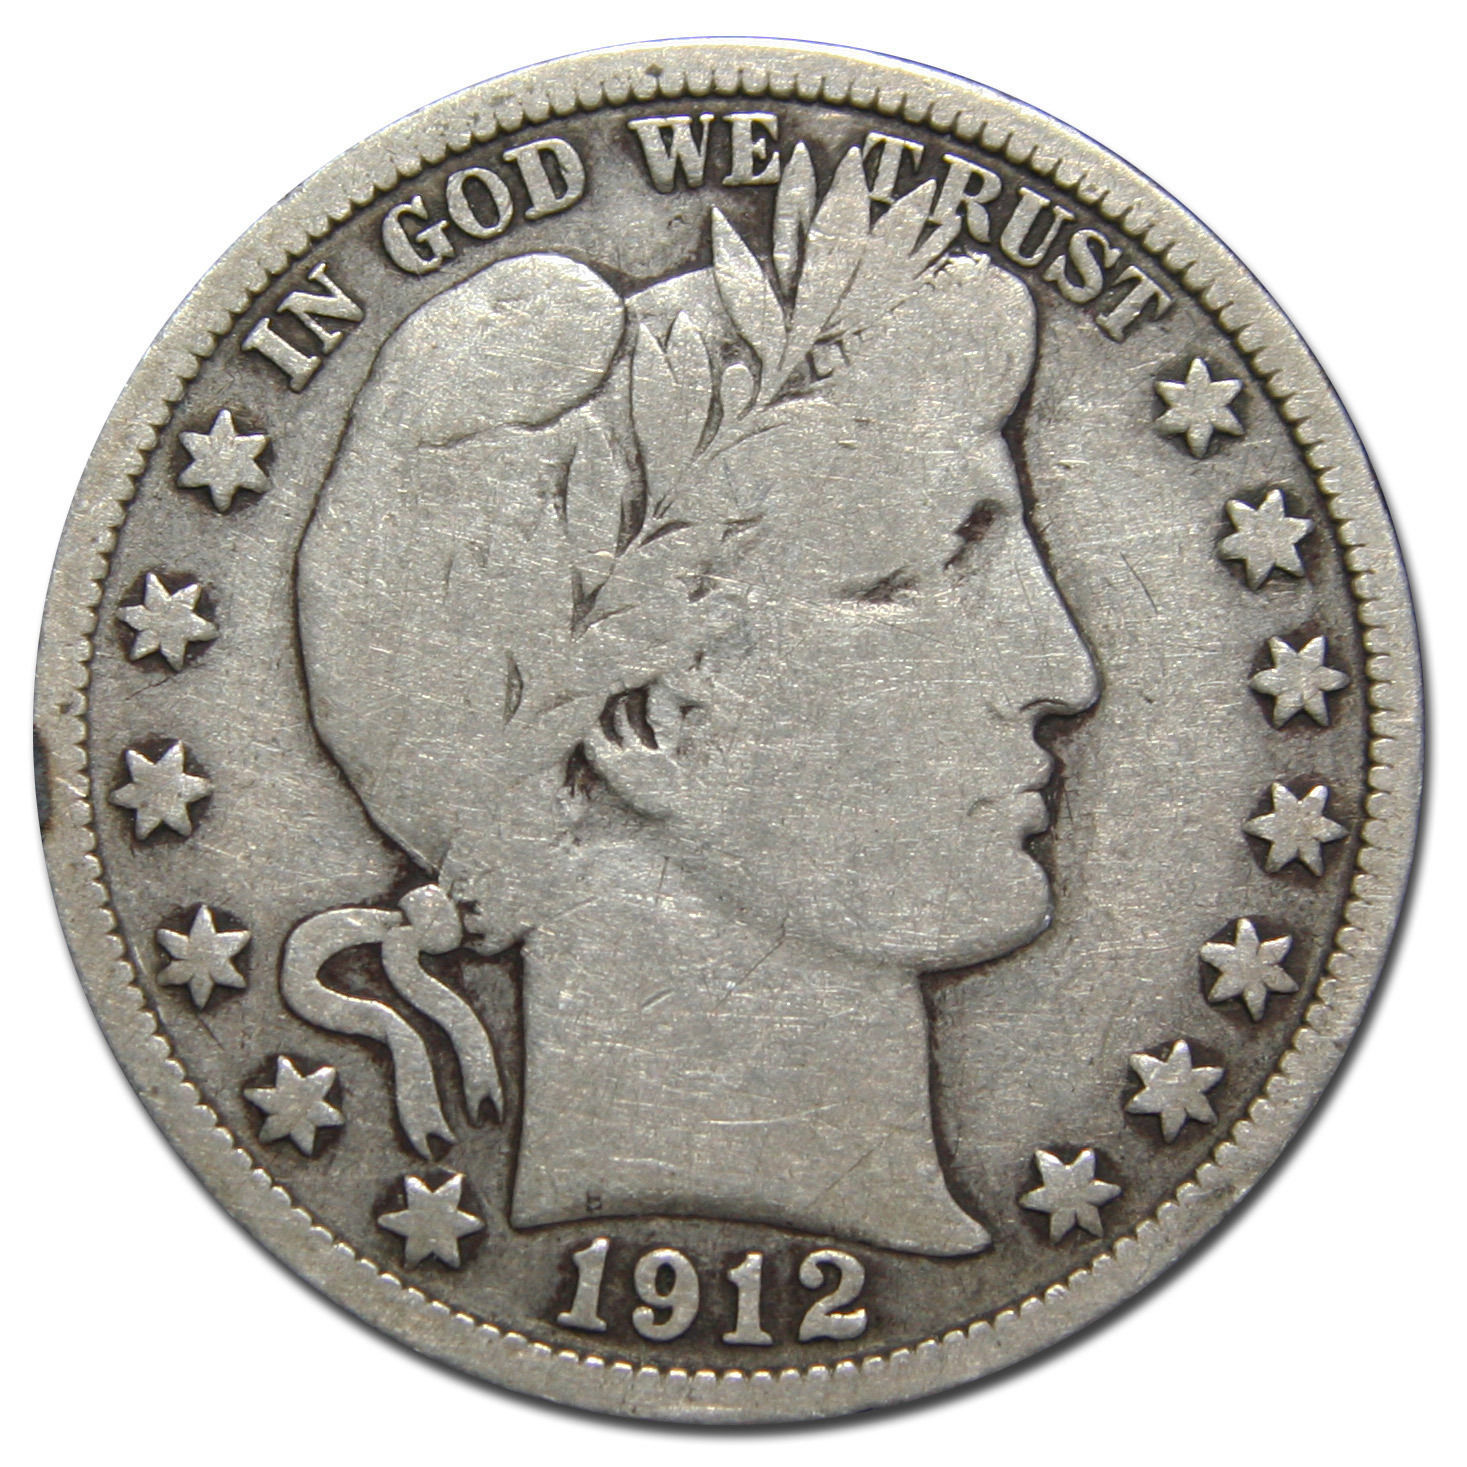 1912S Liberty Barber Head Half Dollar 50¢ Silver Coin Lot MZ 3144